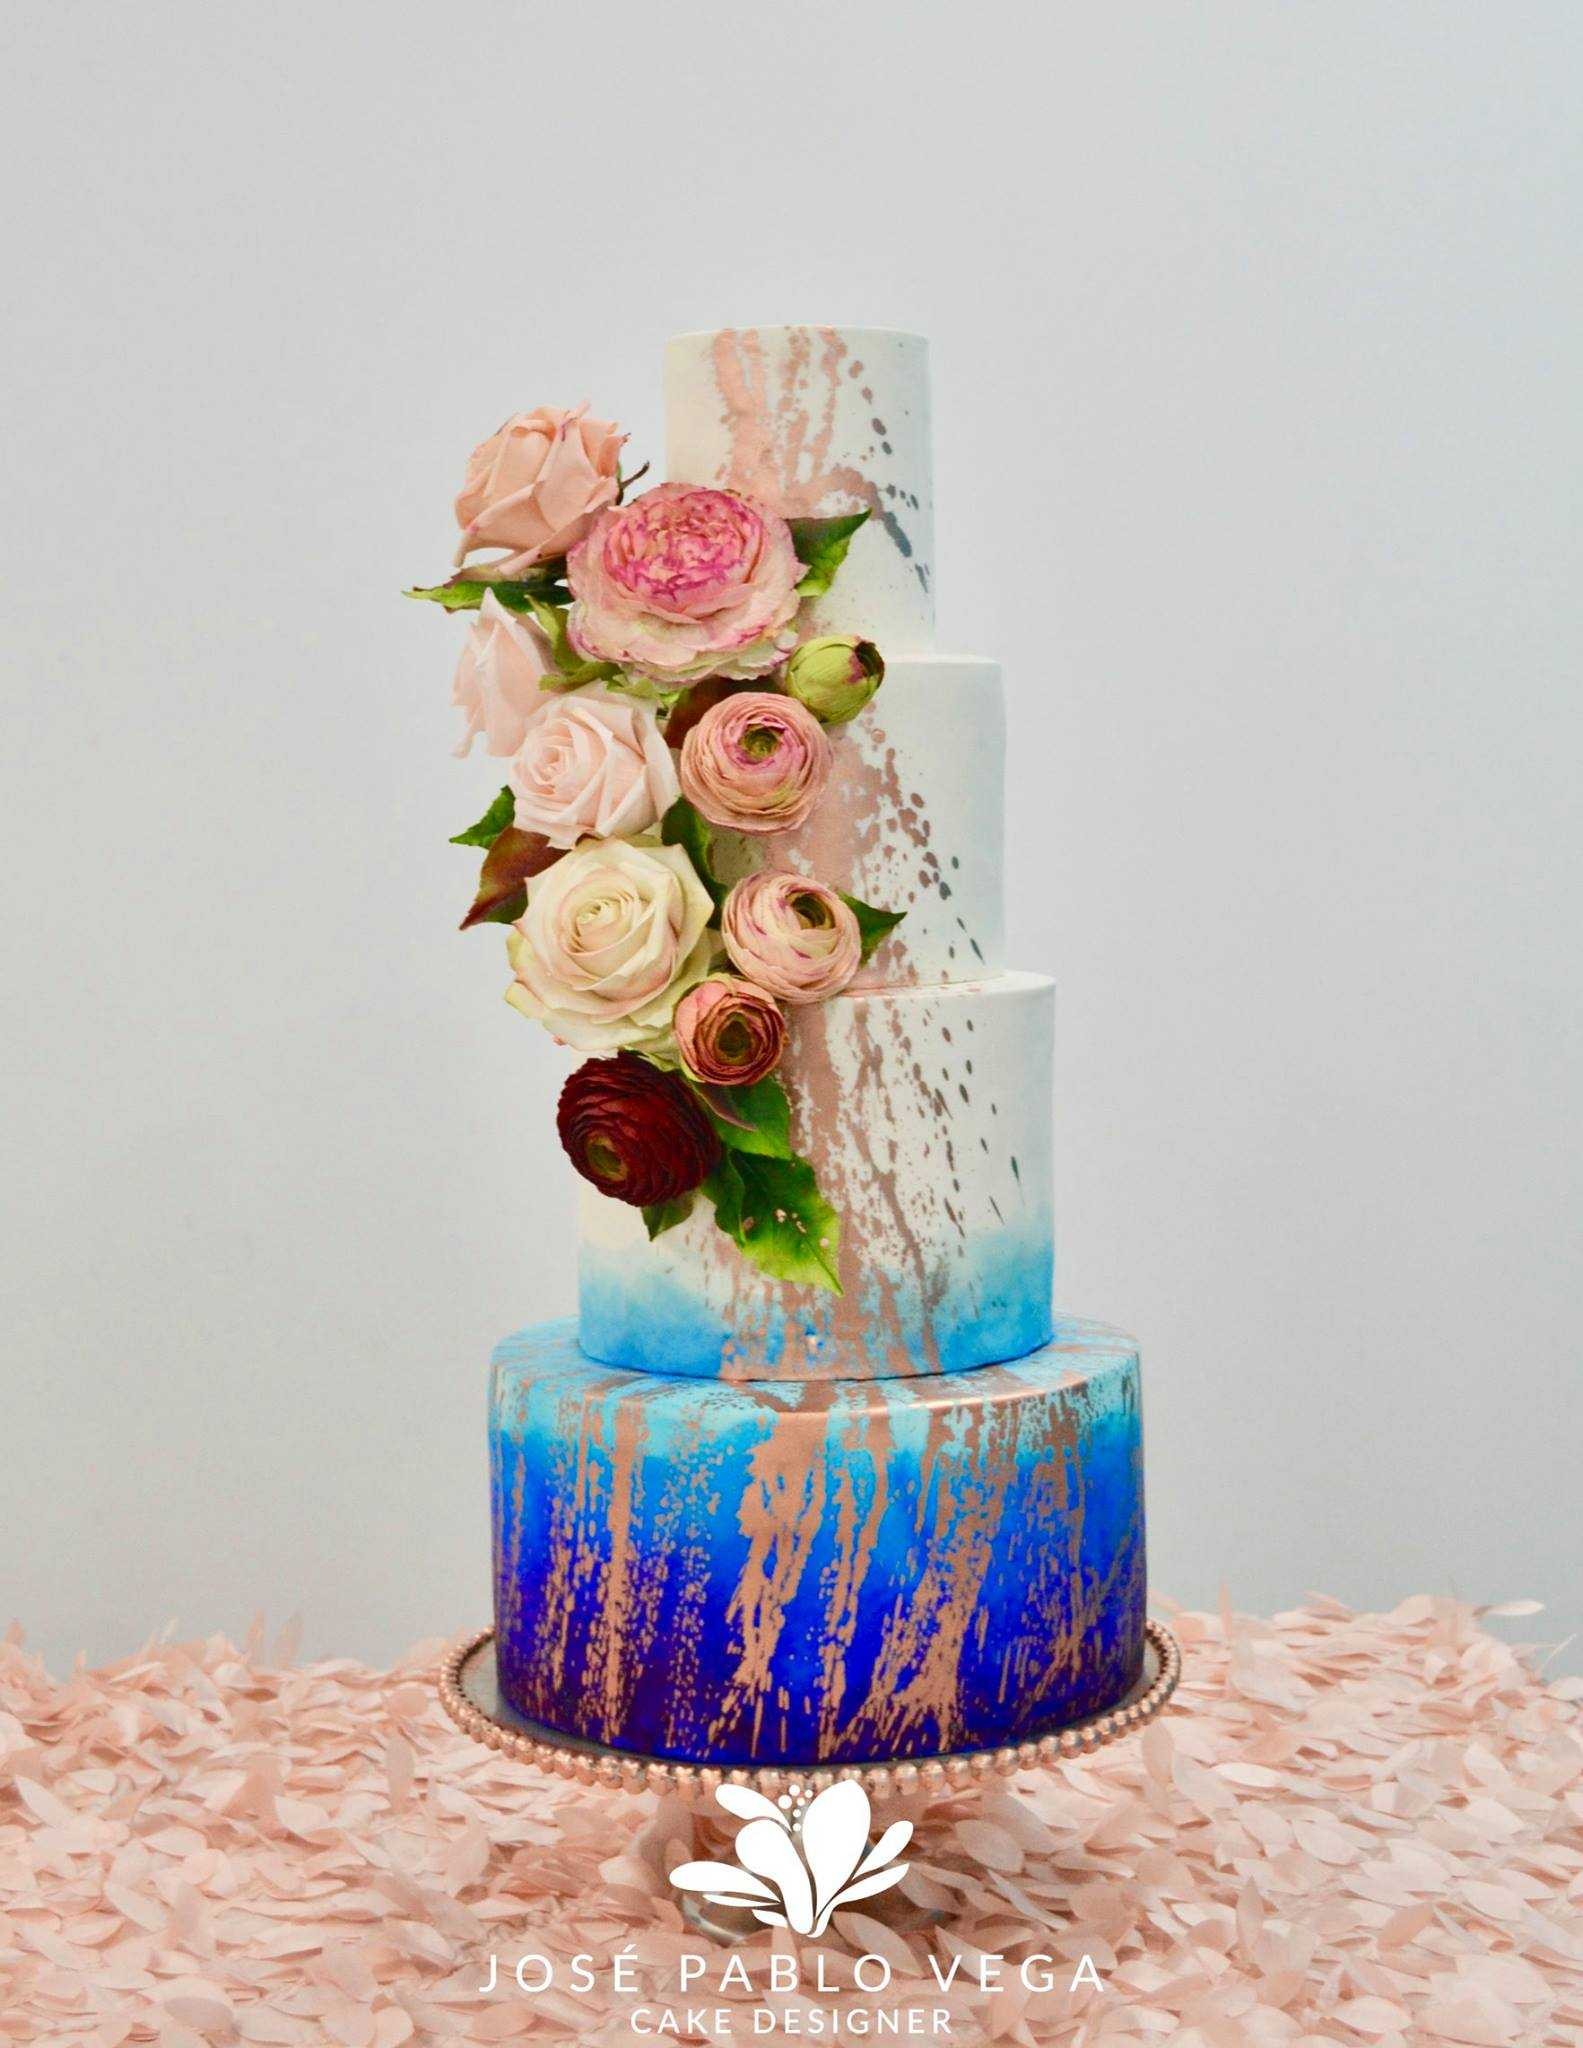 White with blue ombre wedding cake with gold splatter paint